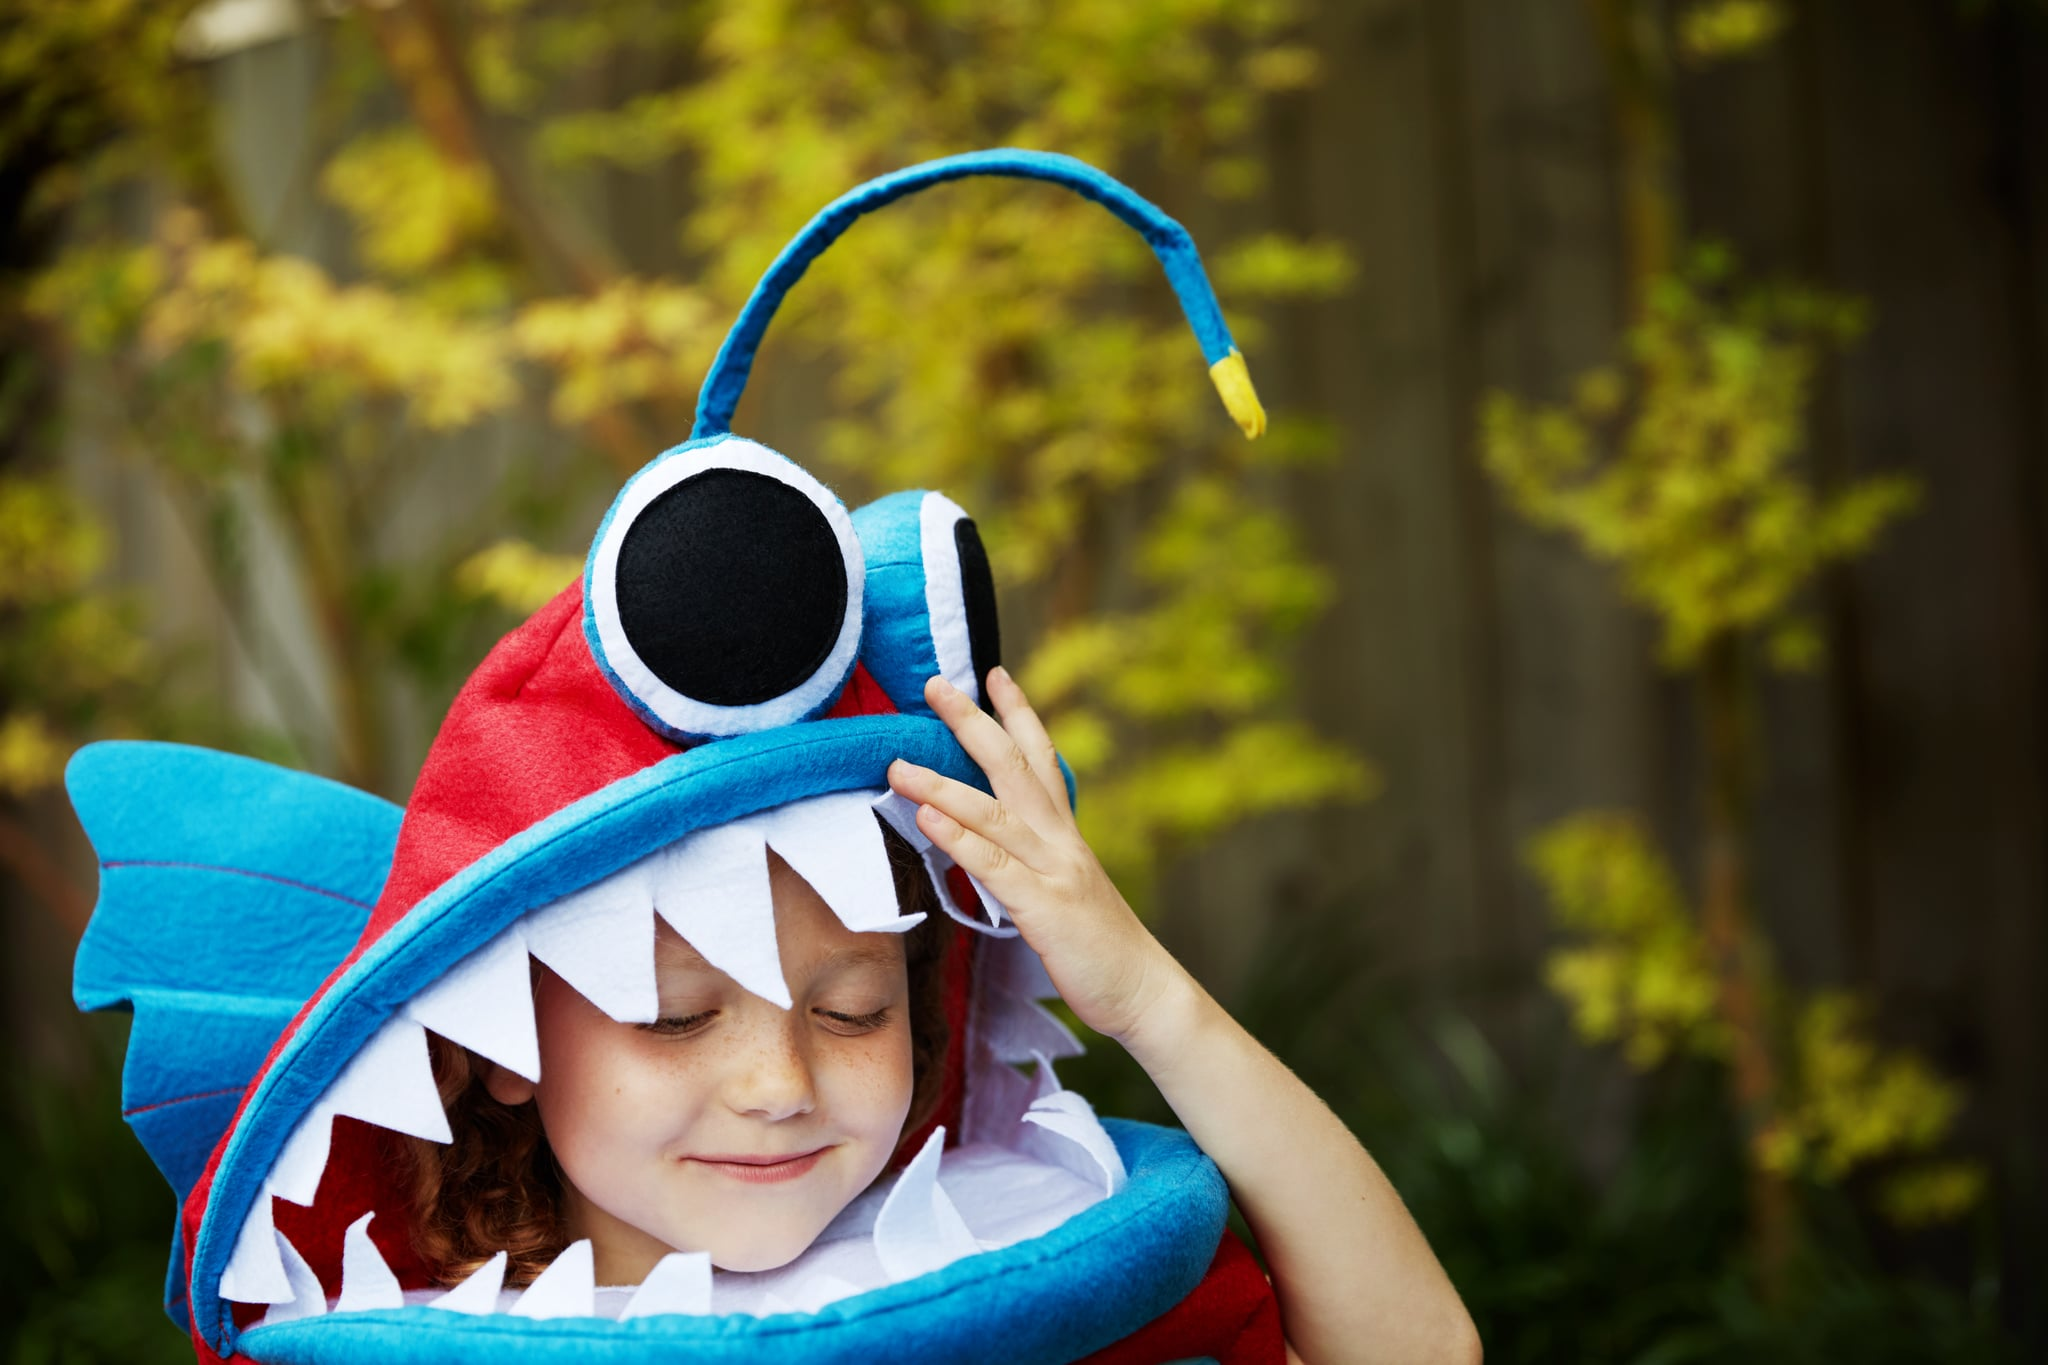 Every Year, My Kid Claims to Want a Scary Halloween Costume, but I Know She's Lying